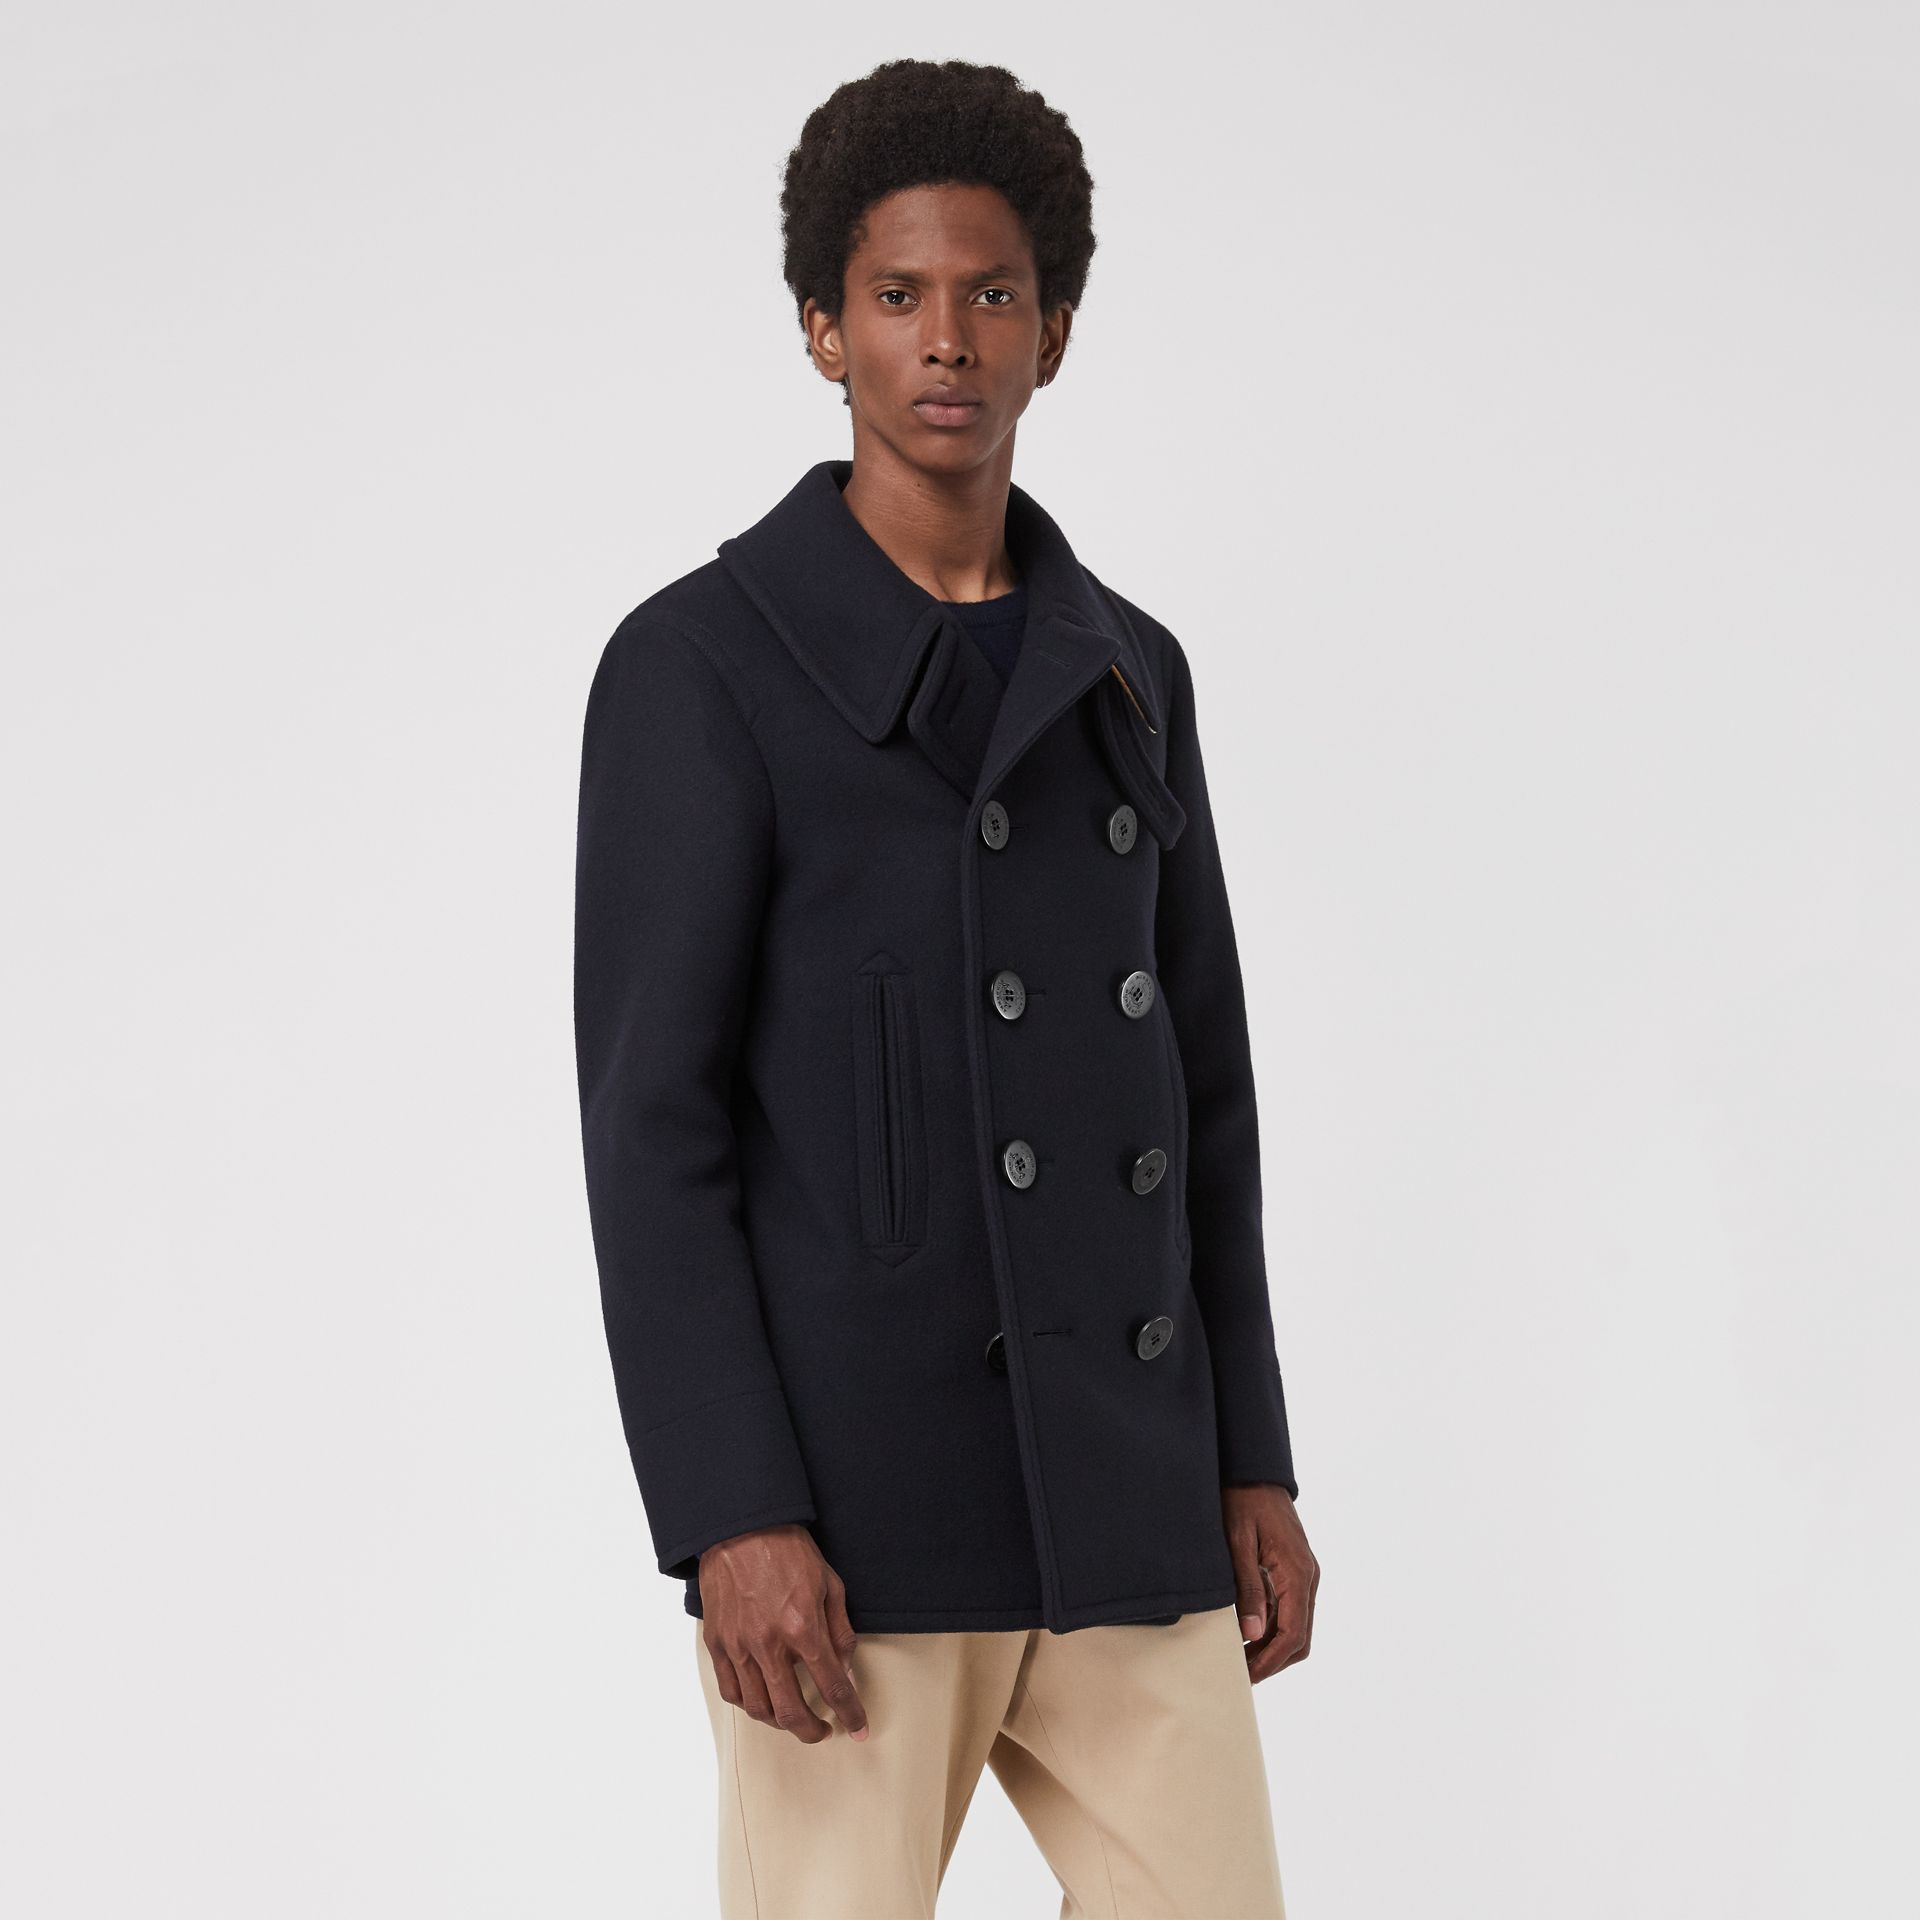 Wool Blend Pea Coat in Navy - Men | Burberry Canada - gallery image 5